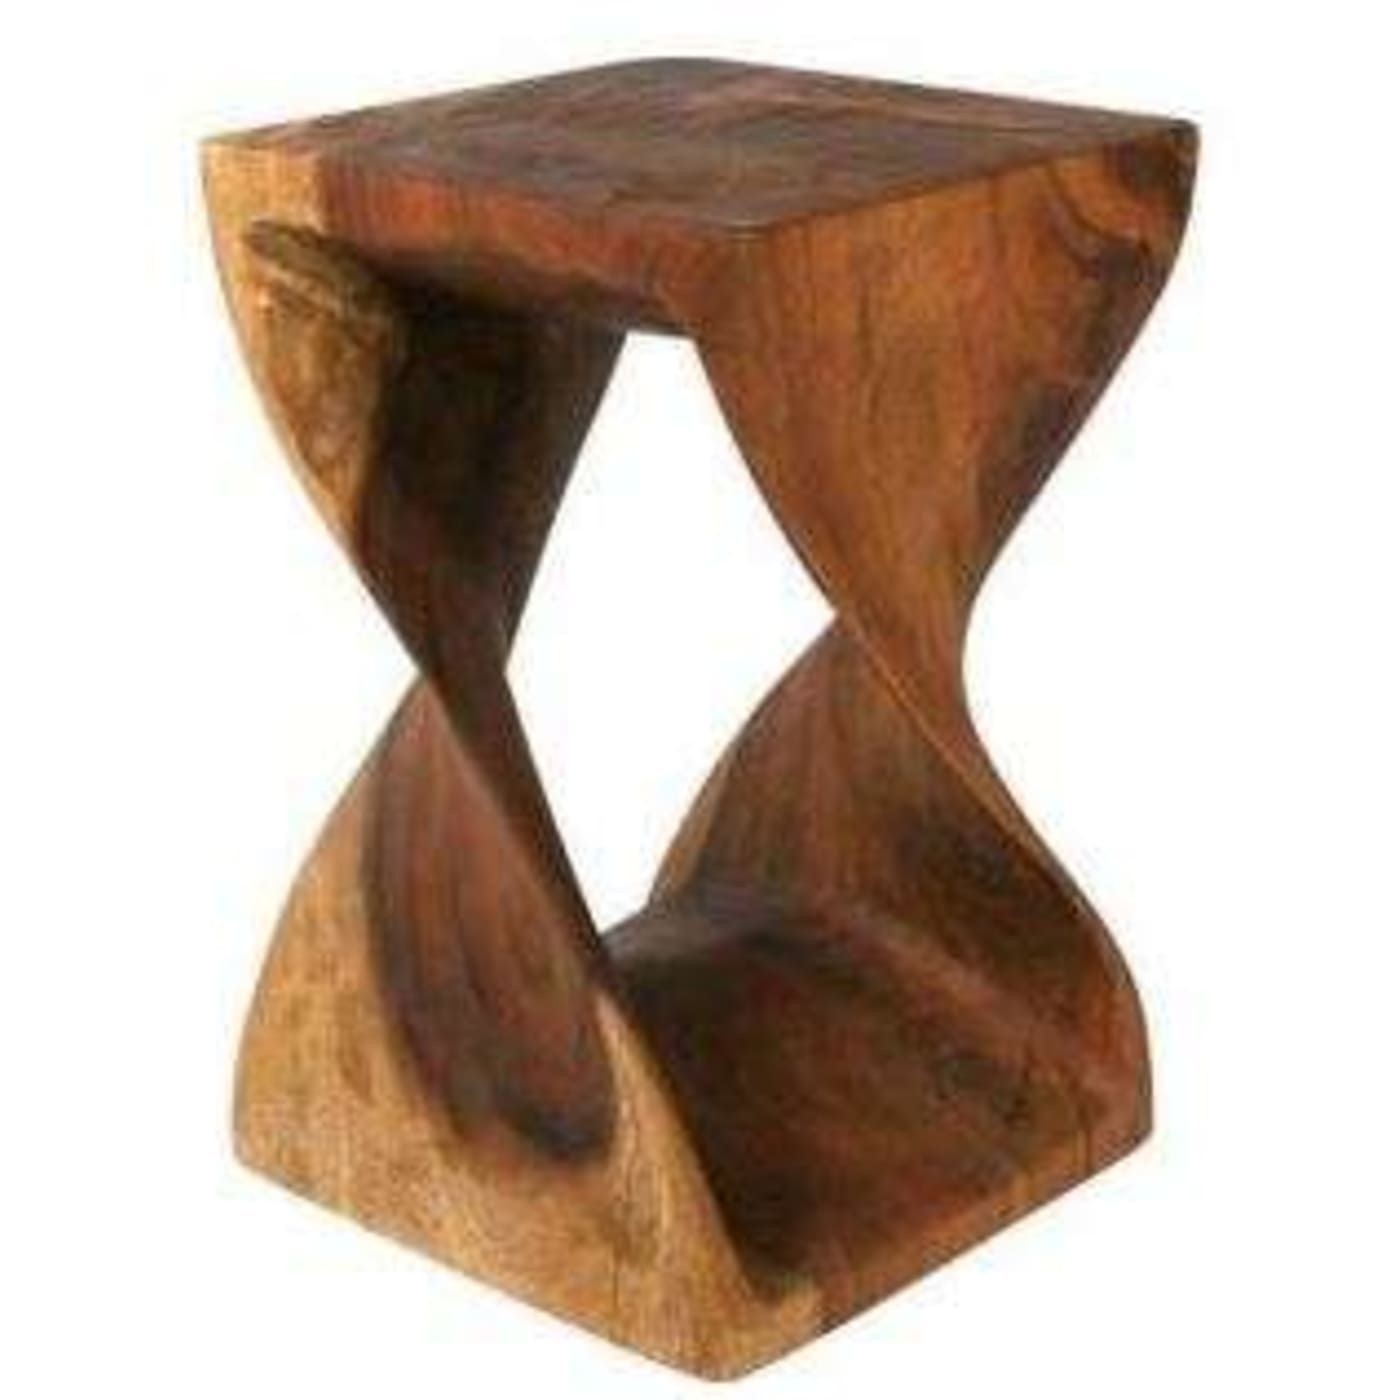 Novelty End Tables Ideas On Foter